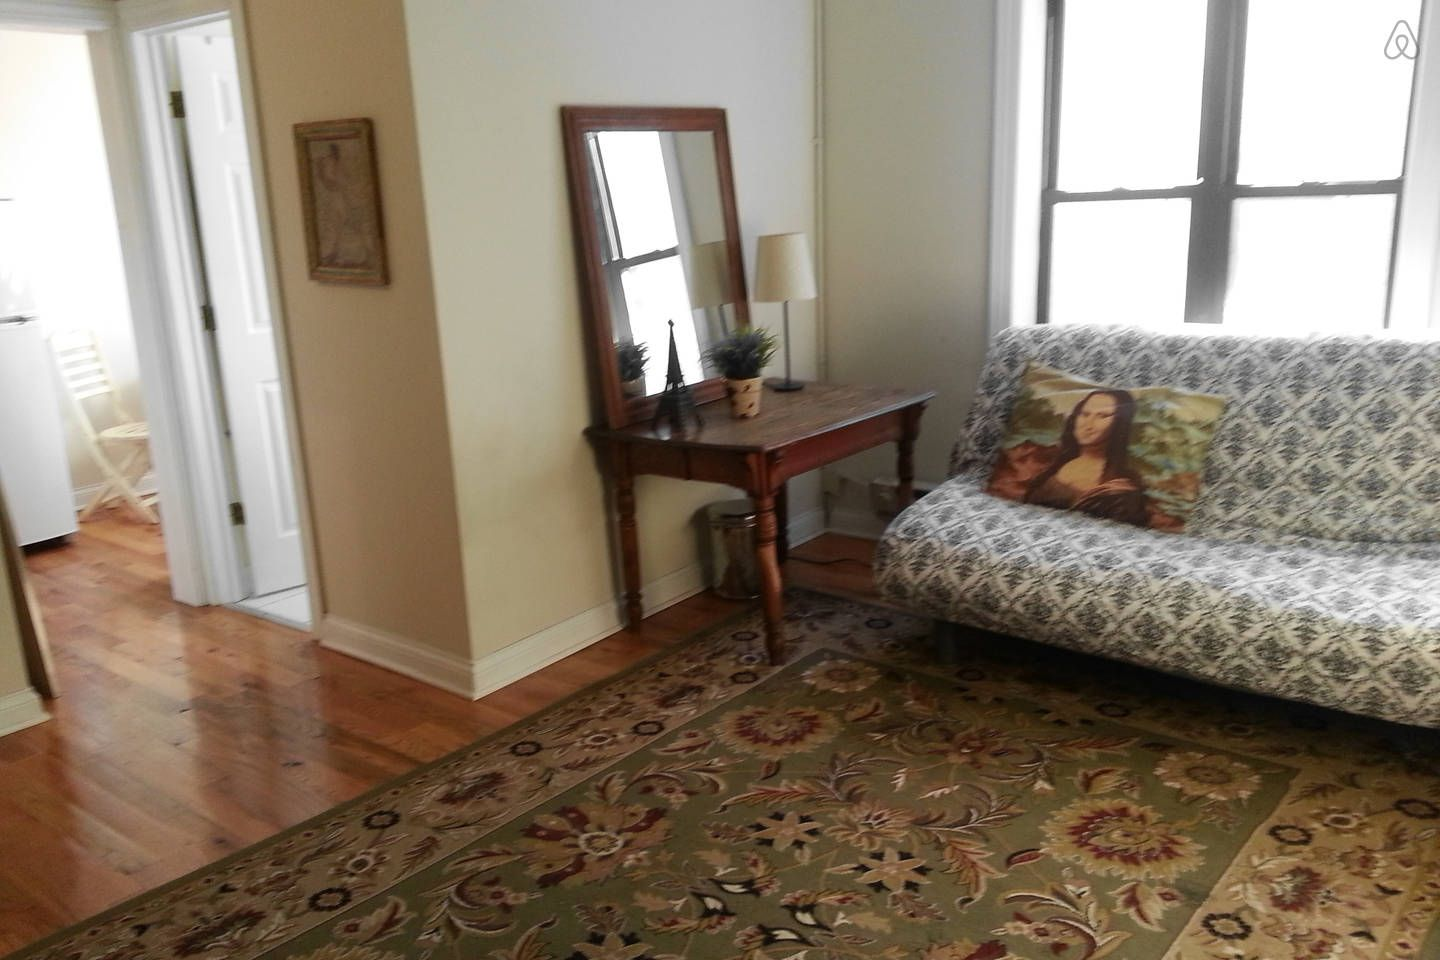 Studio By The Zoo 1695 00 Month In Chicago Chicago Vacation Oak Park Vacation Home